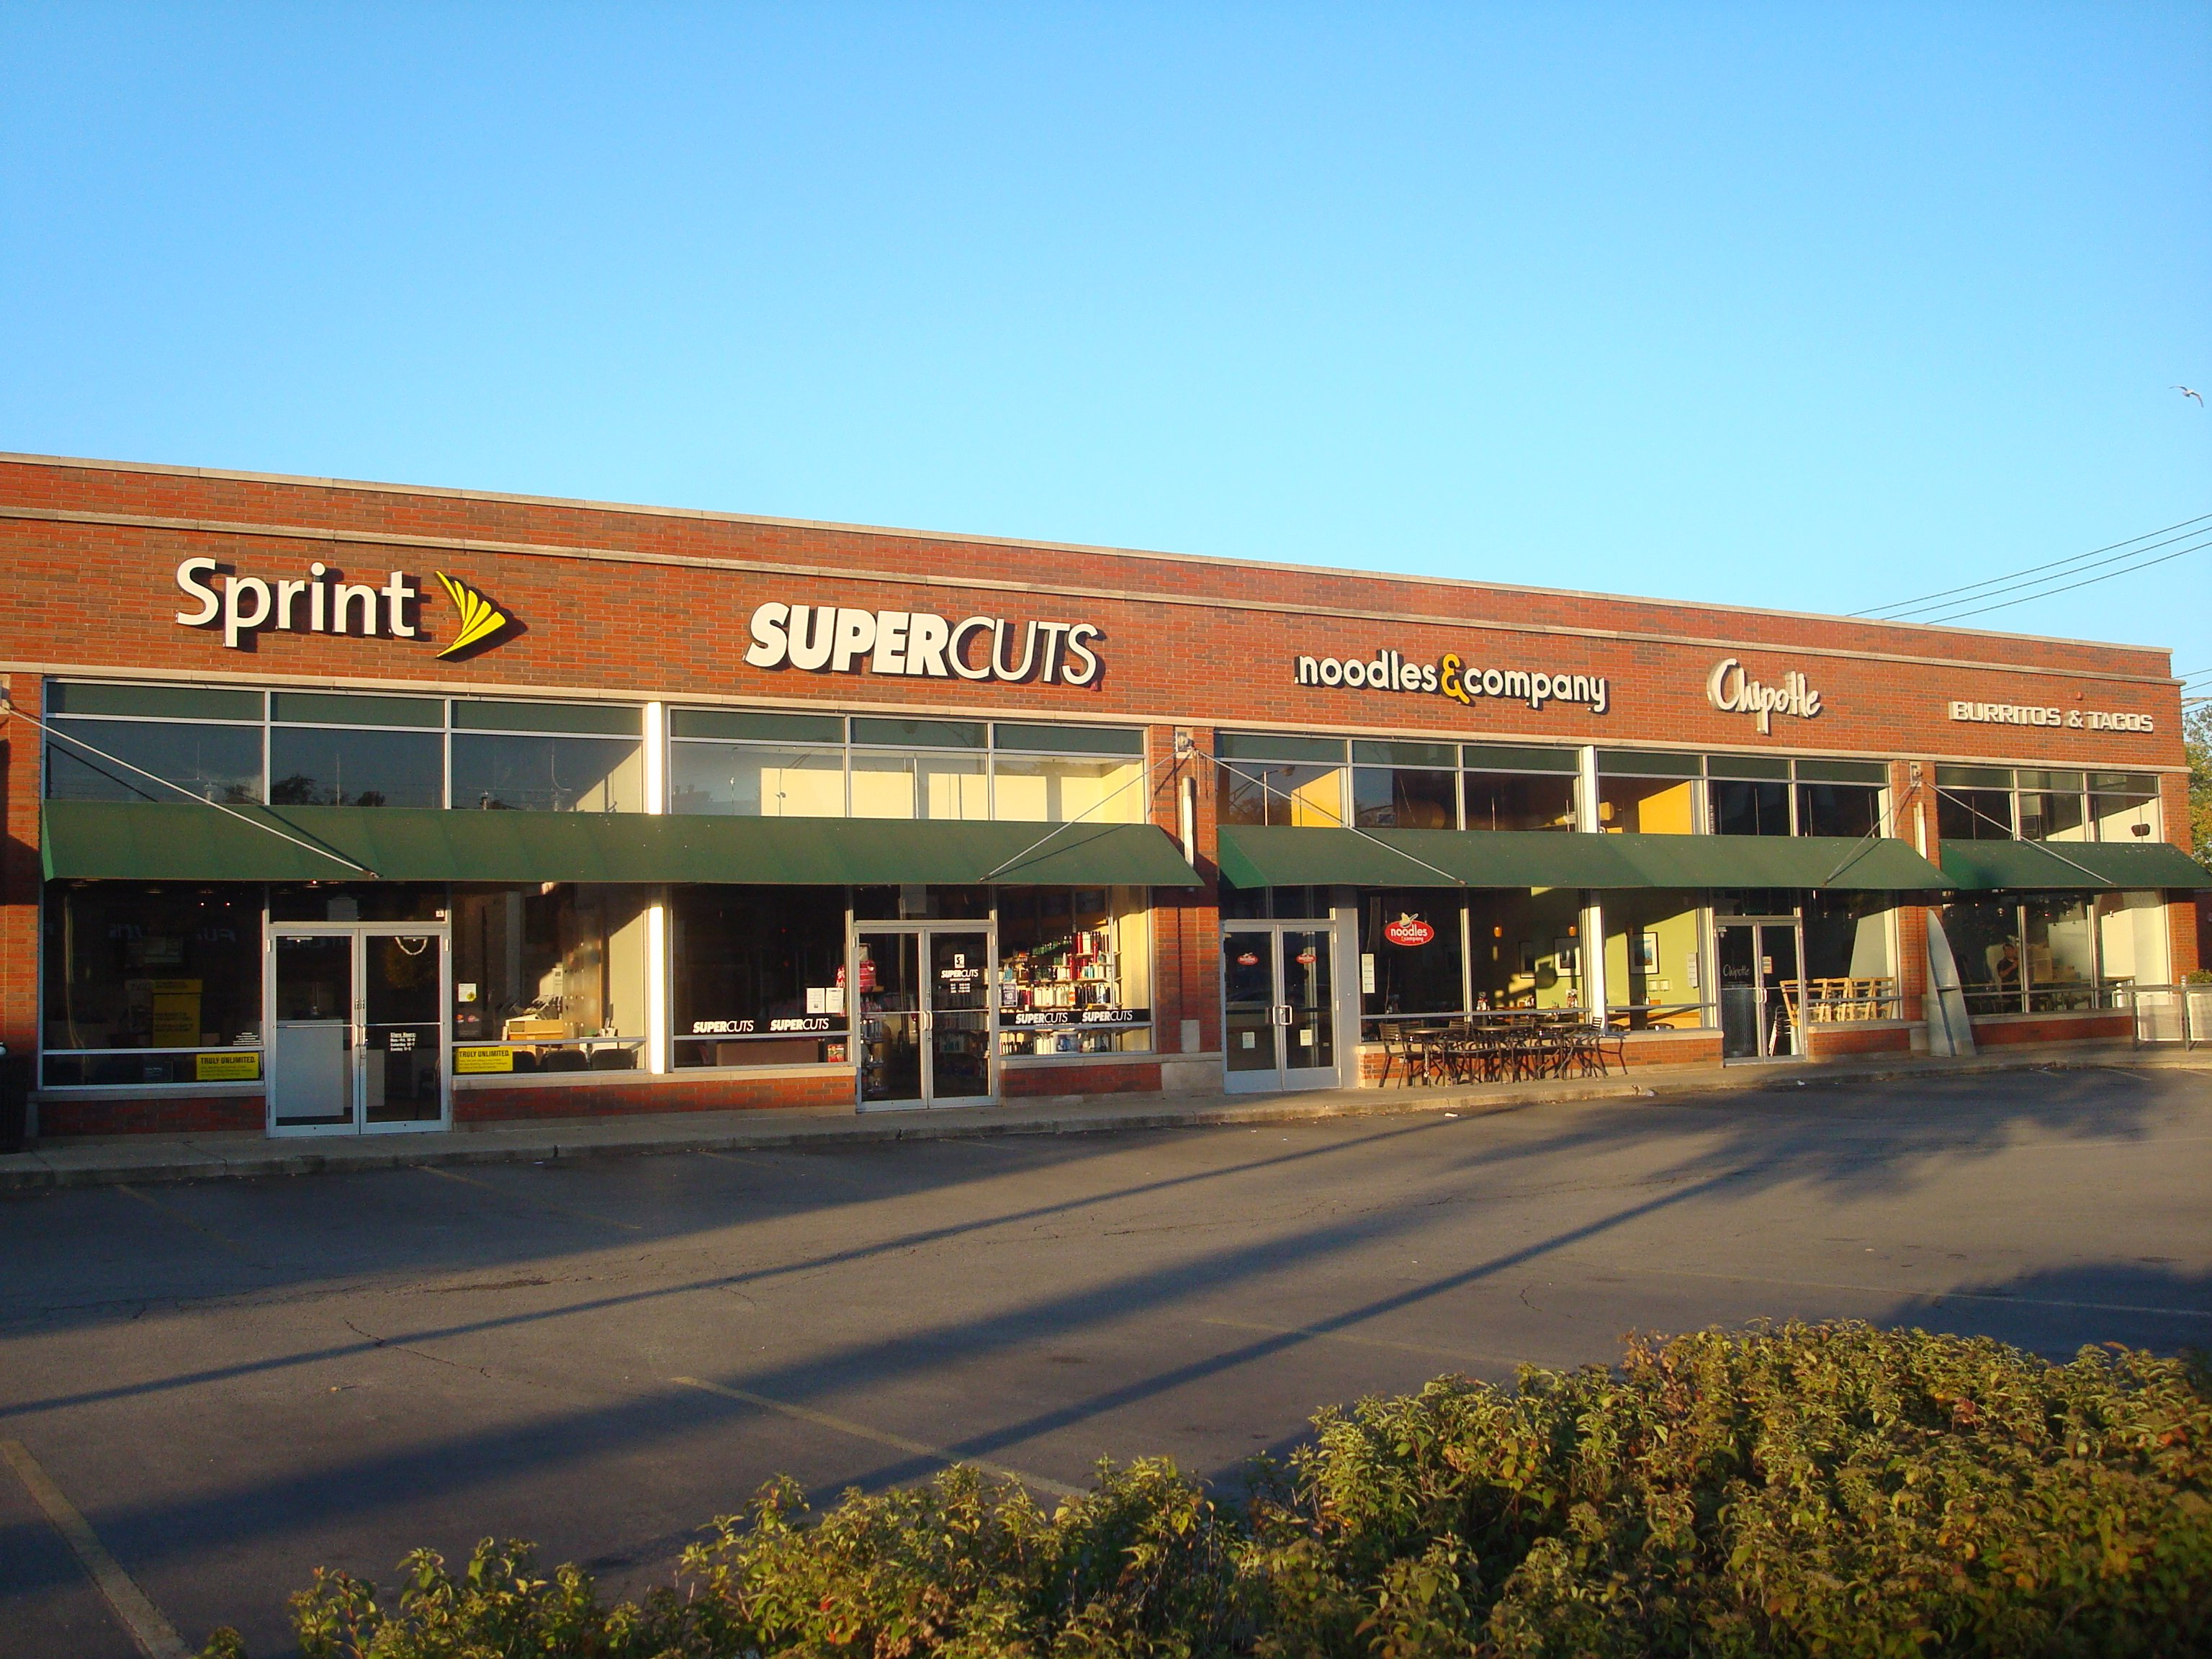 Clybourn Sprint – Chip. with parking lot